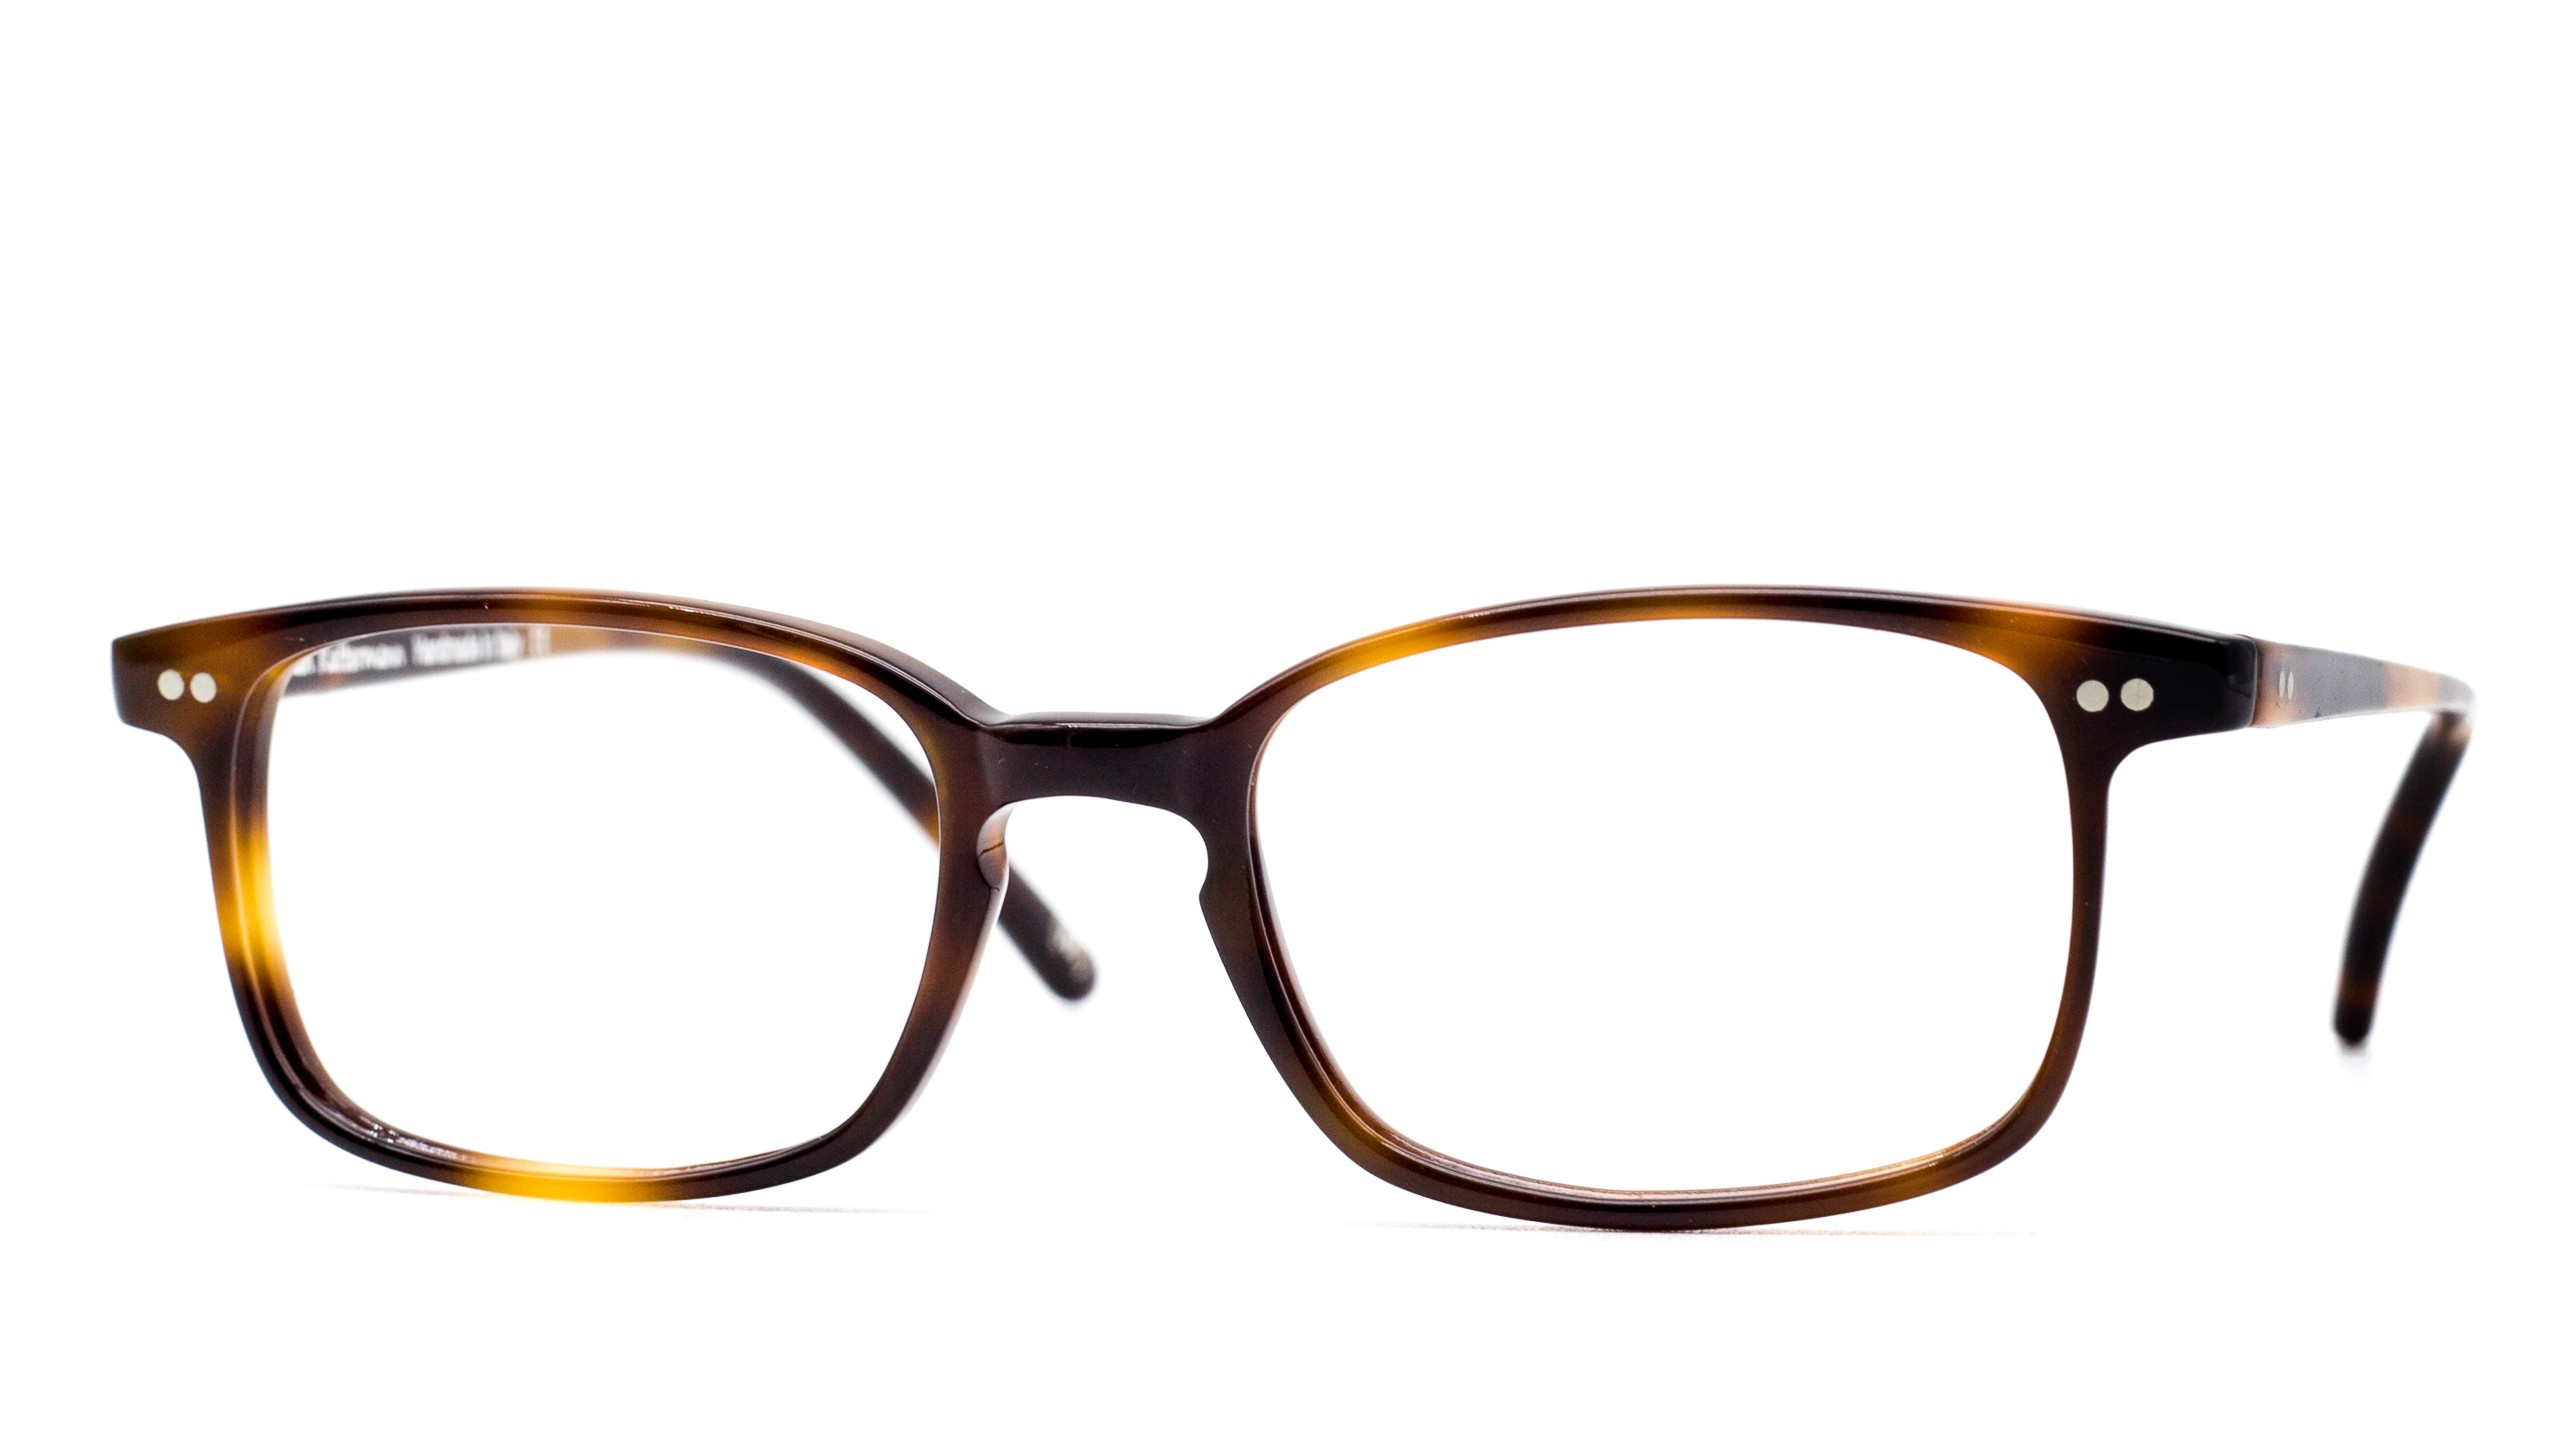 eyeglasses-Nathan-Kaltermann-made-in-Italy-Eddy-C03-Vista2